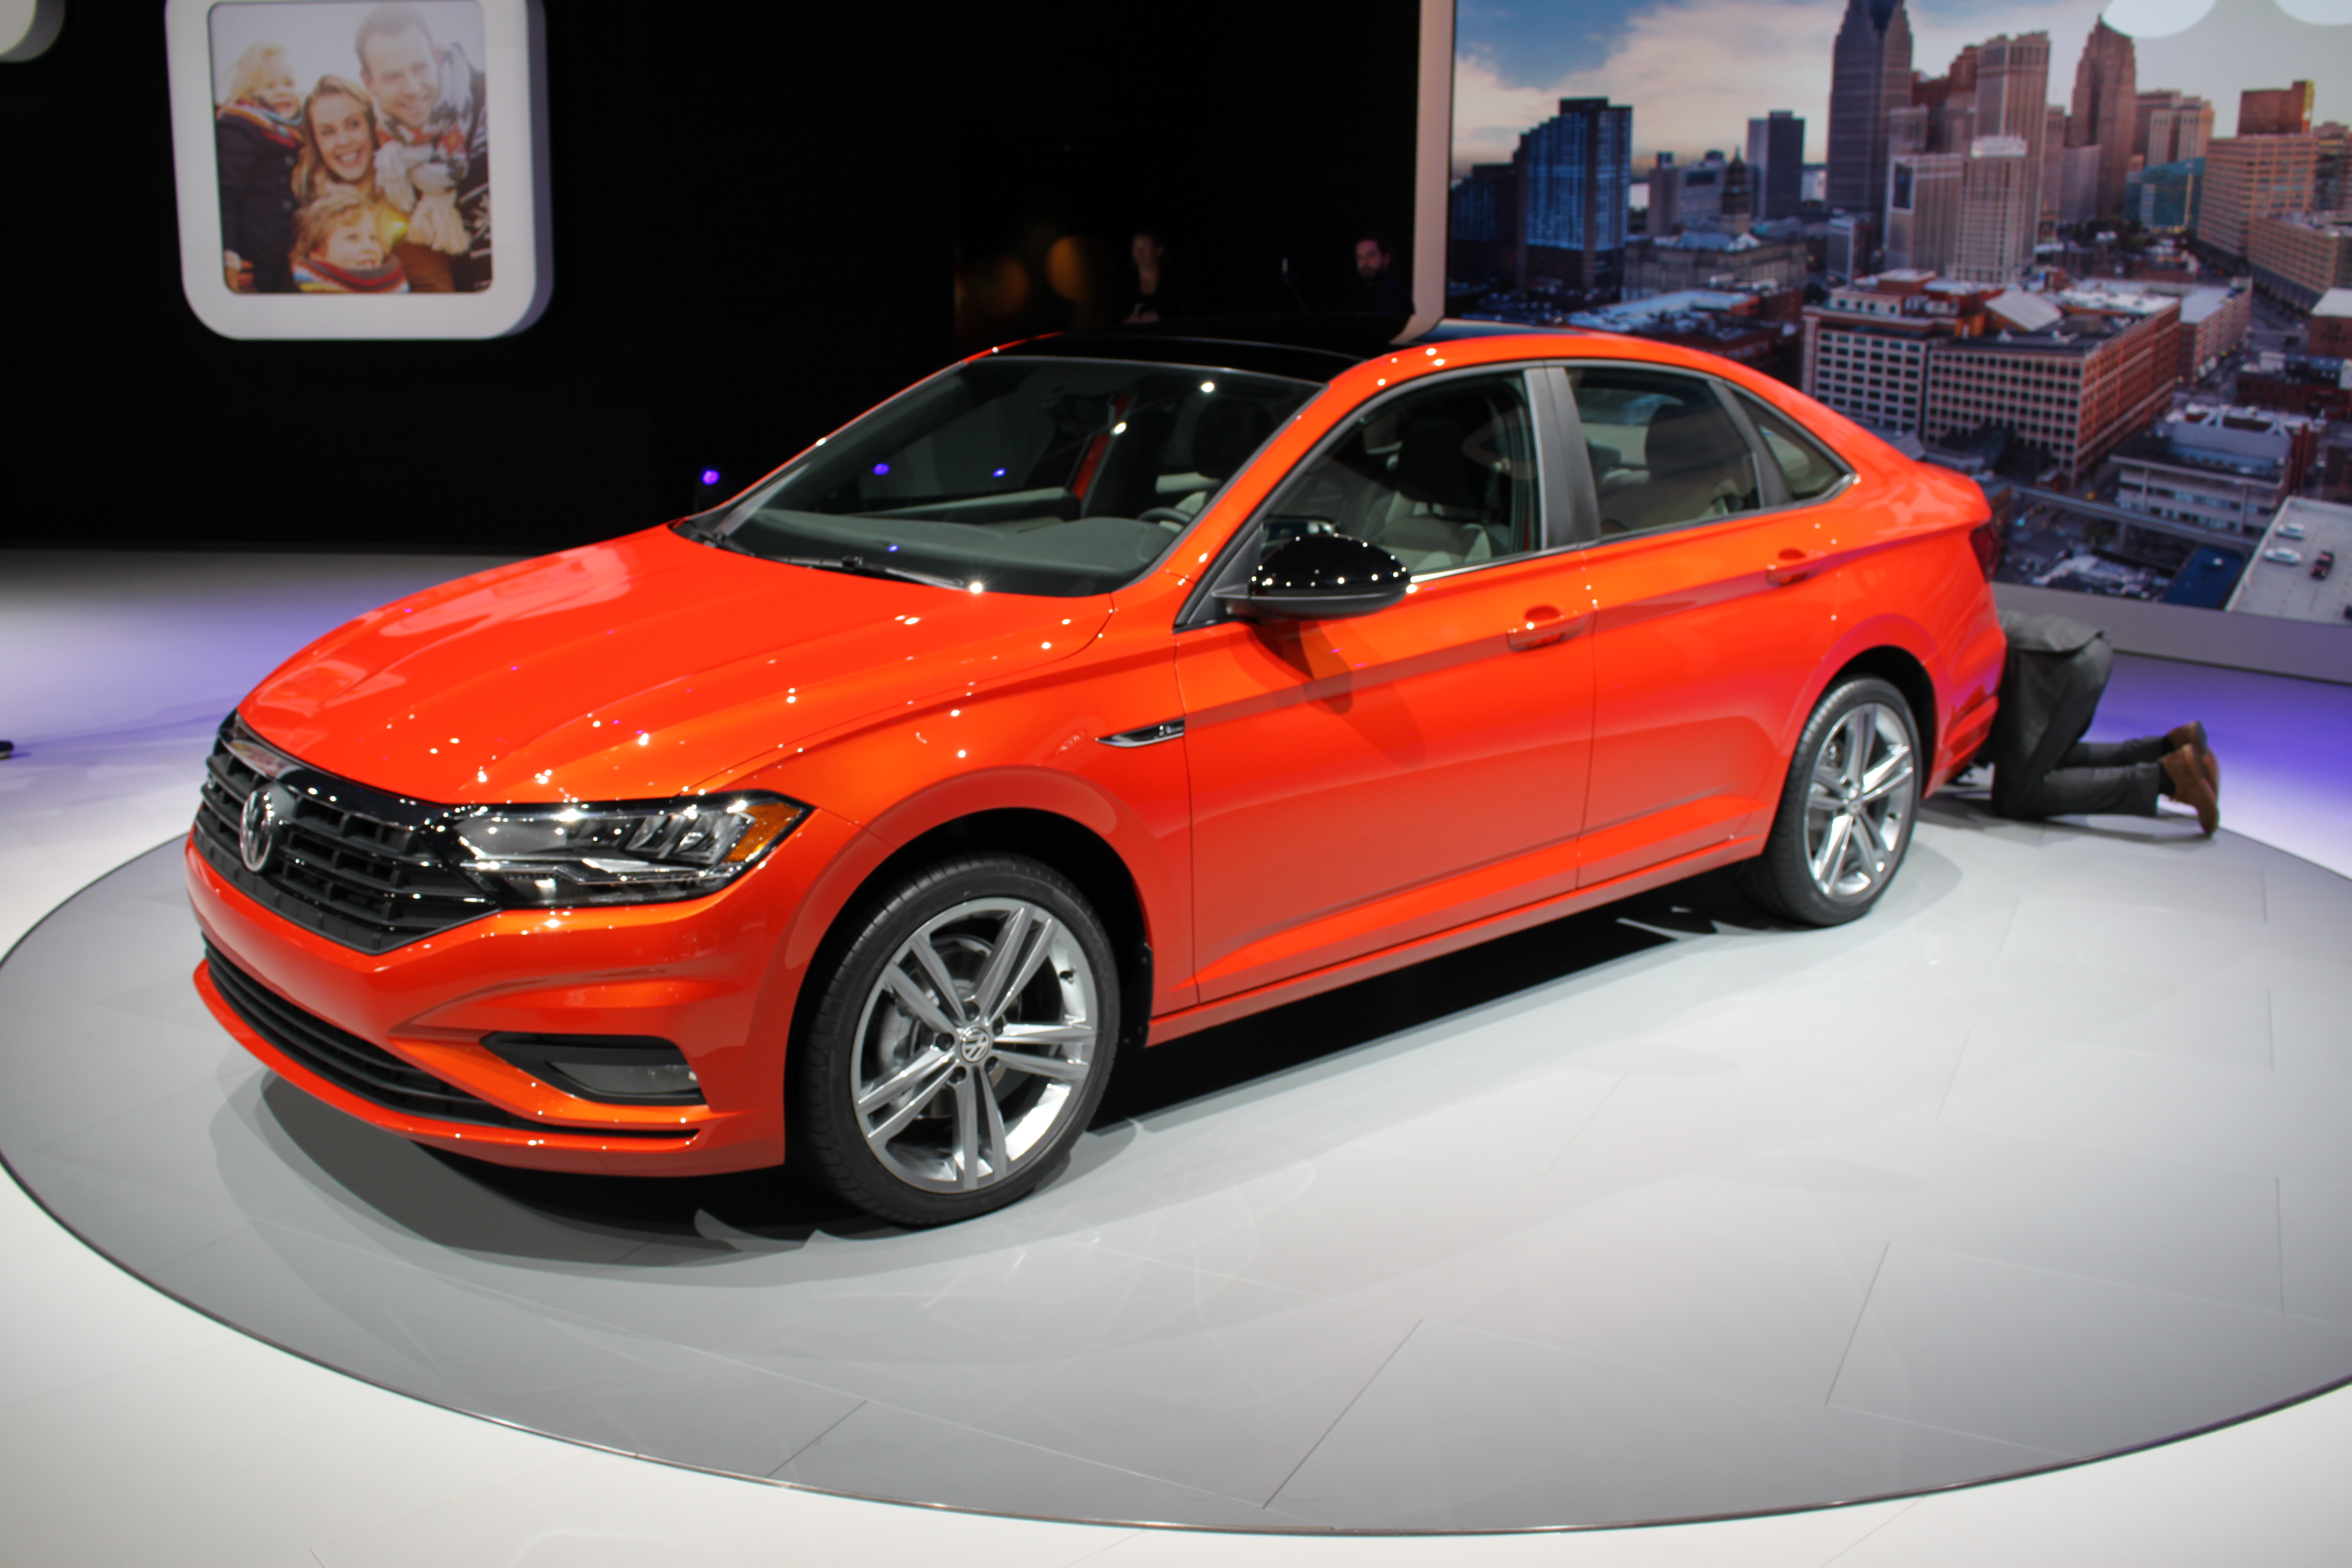 Car Insurance For Volkswagen Jetta